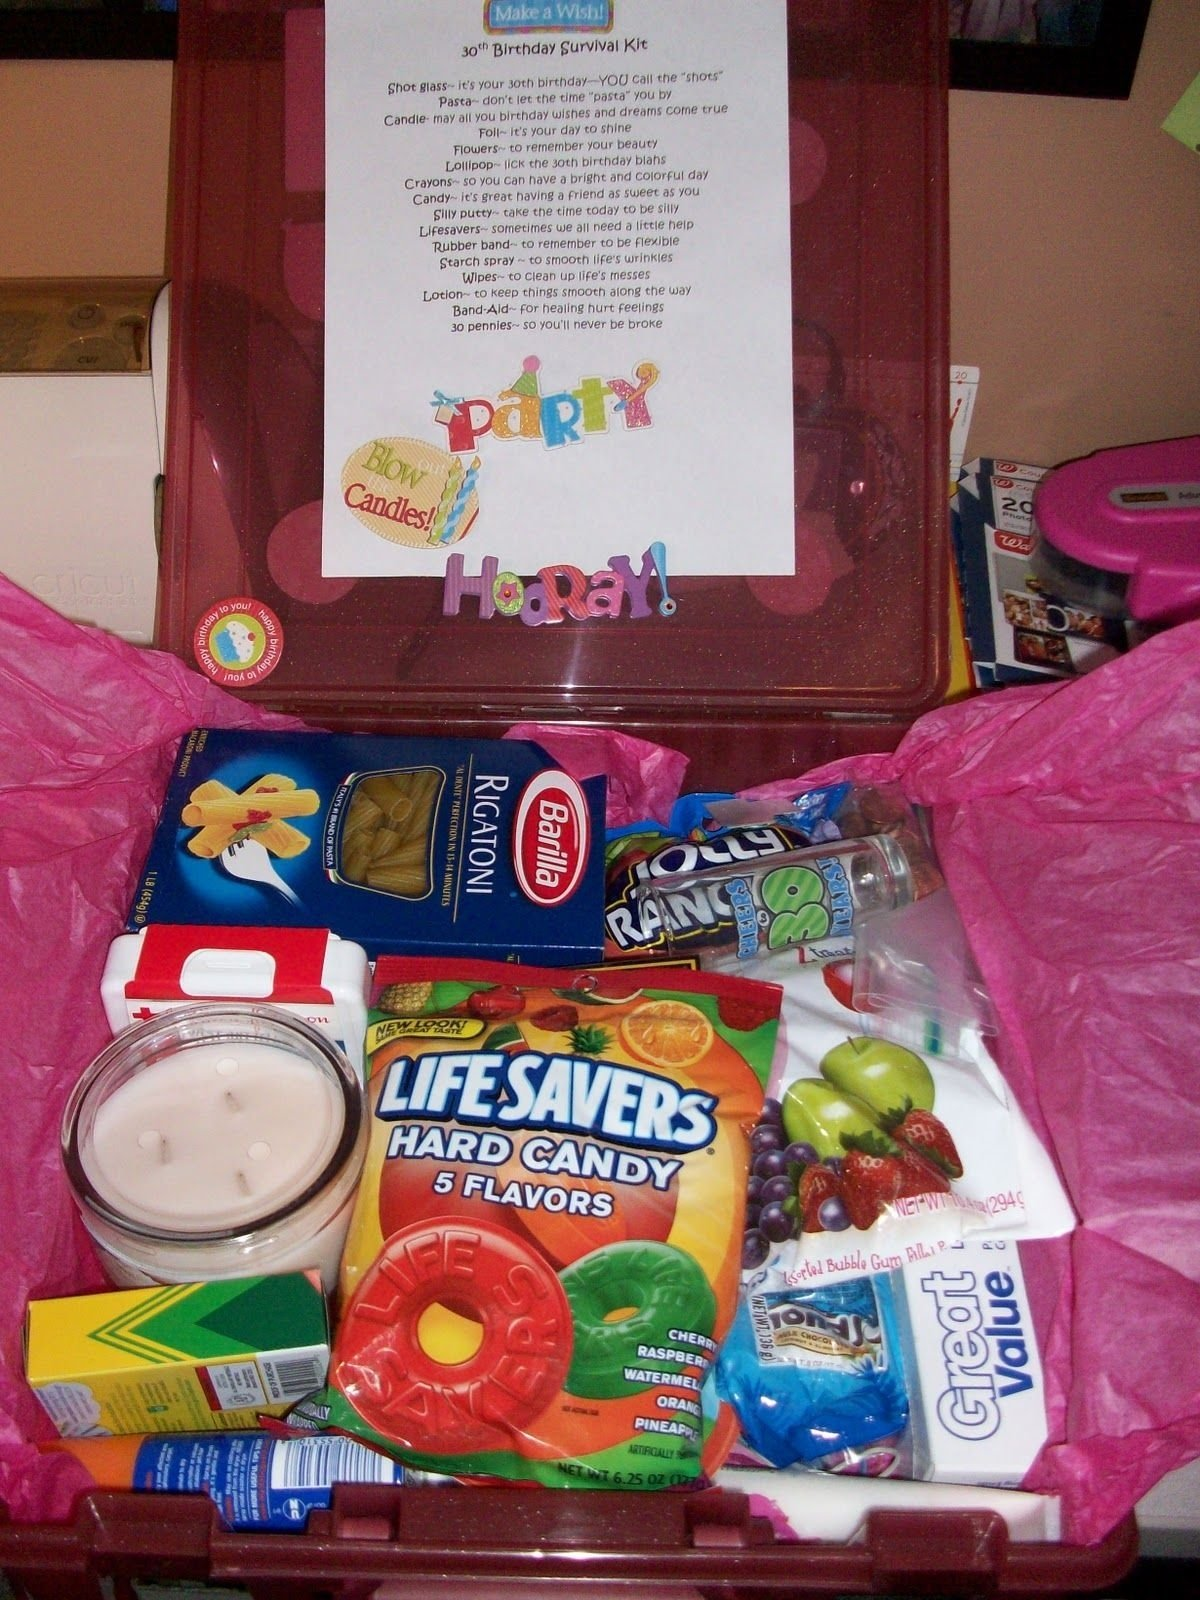 10 Fabulous Cute Gift Ideas For Her survival kits milestones cute idea and can easily be adjusted 2021